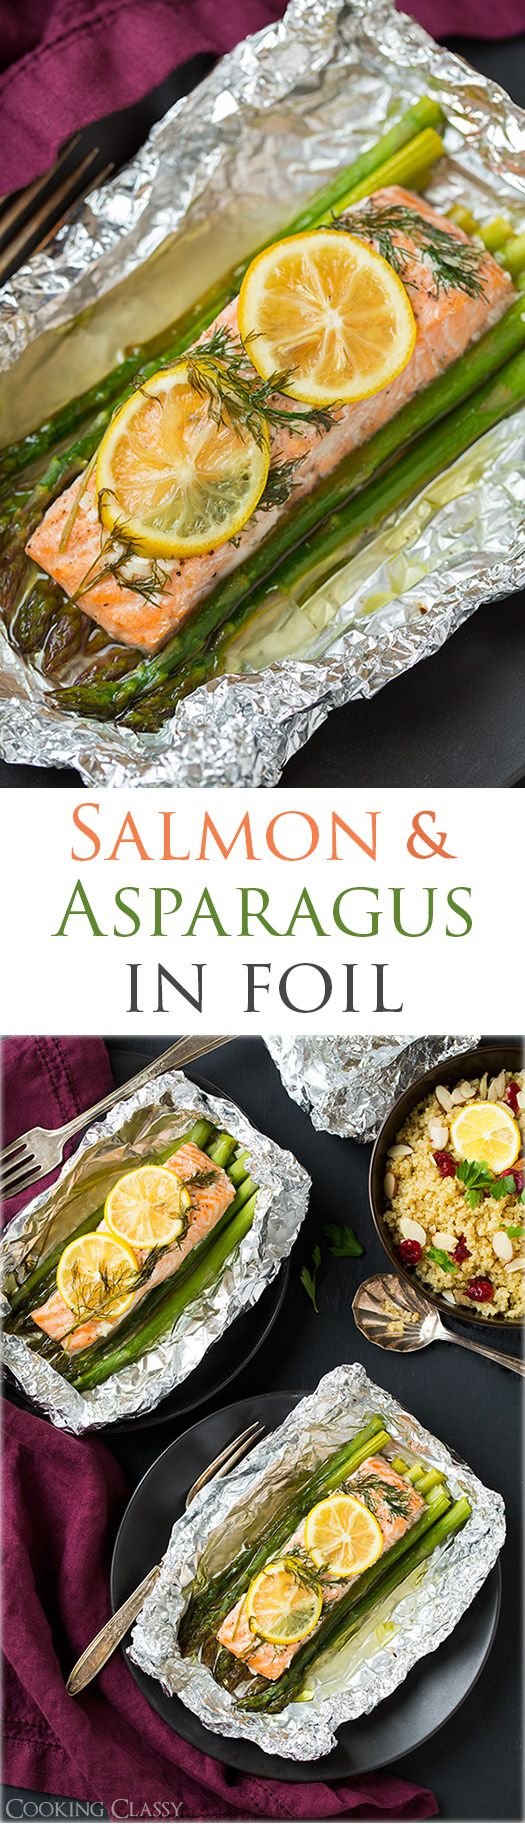 {USA} Baked Salmon and Asparagus in Foil - this is one of the easiest dinners ever, it tastes amazing, it's perfectly healthy and clean up is a breeze!